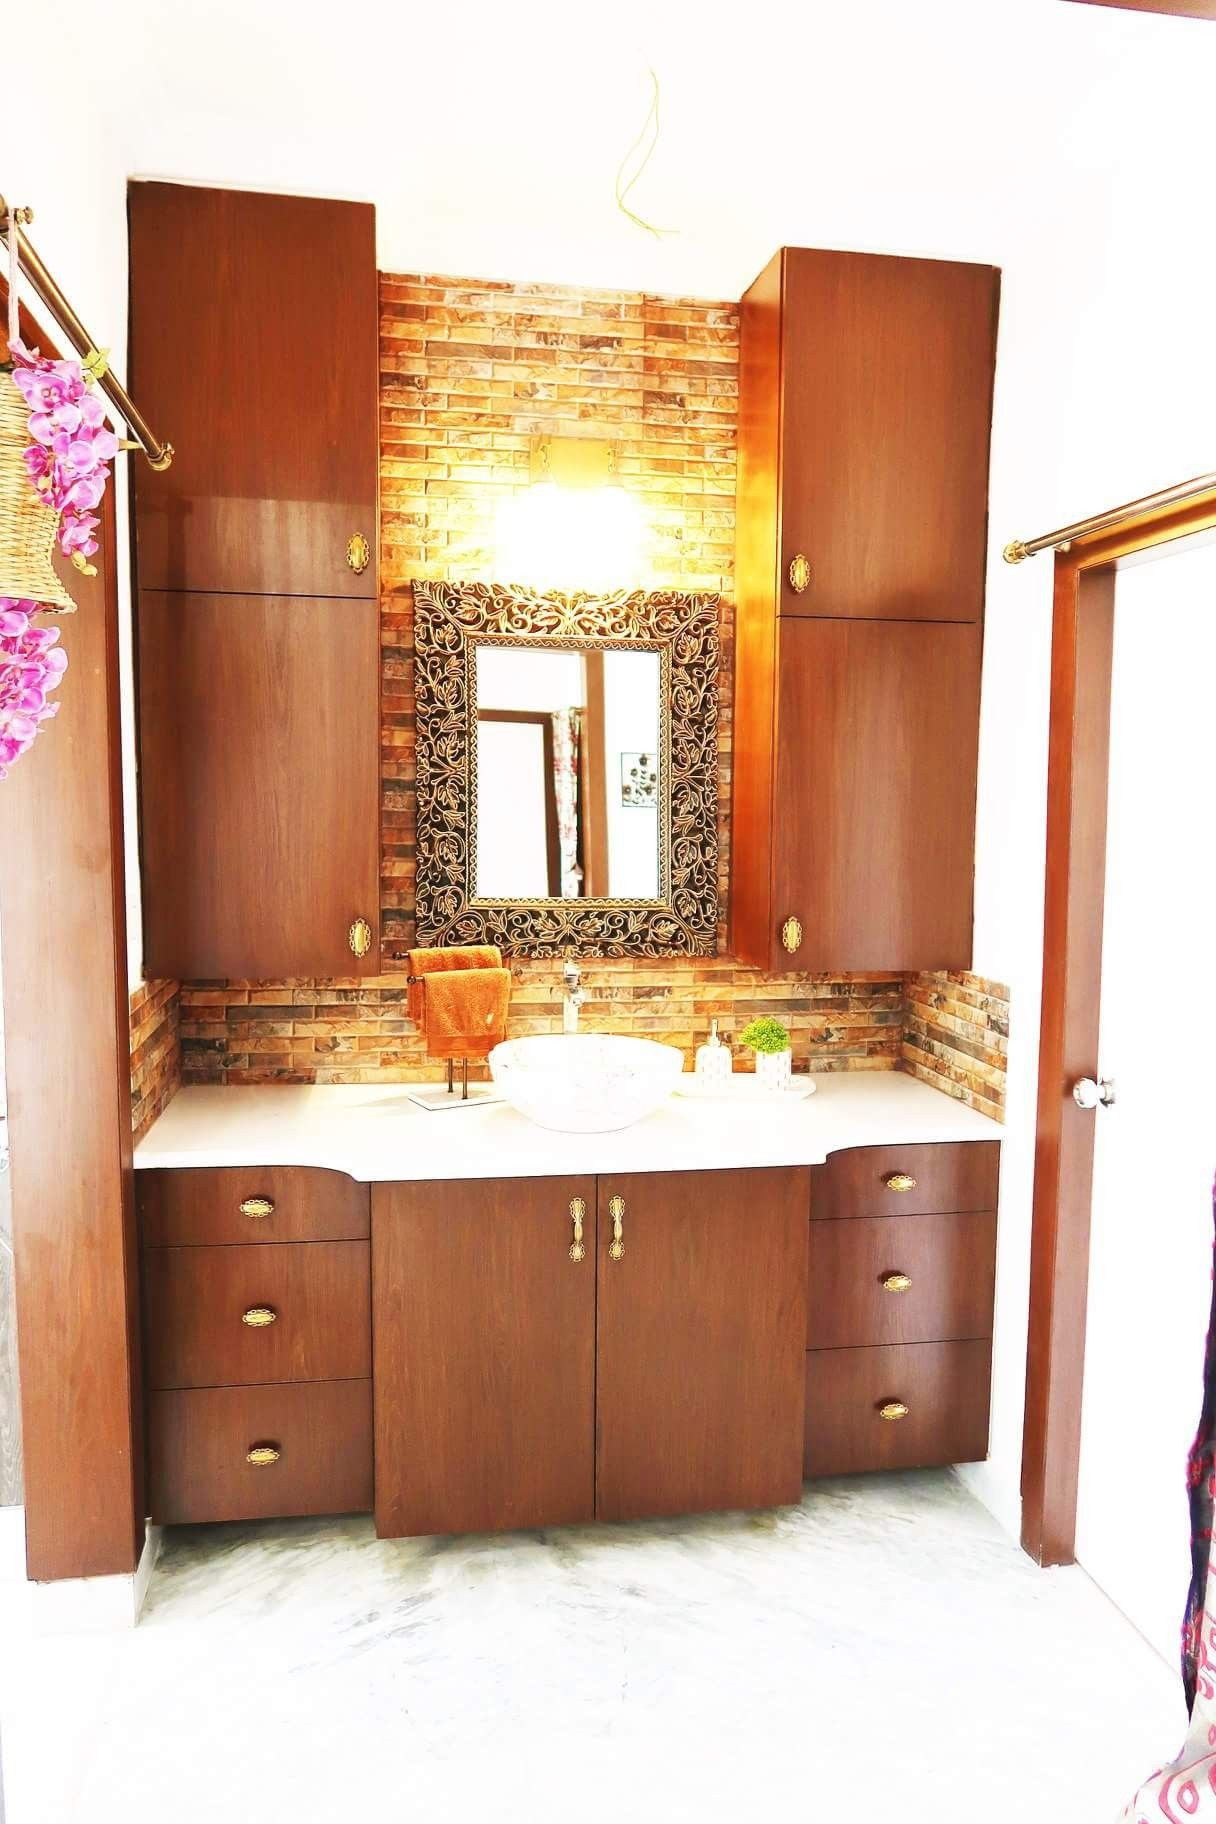 Living And Dining Area Wash Basin Area Cabinets Wooden Mirror Washbasin Design Remodel Bedroom Small Bedroom Remodel